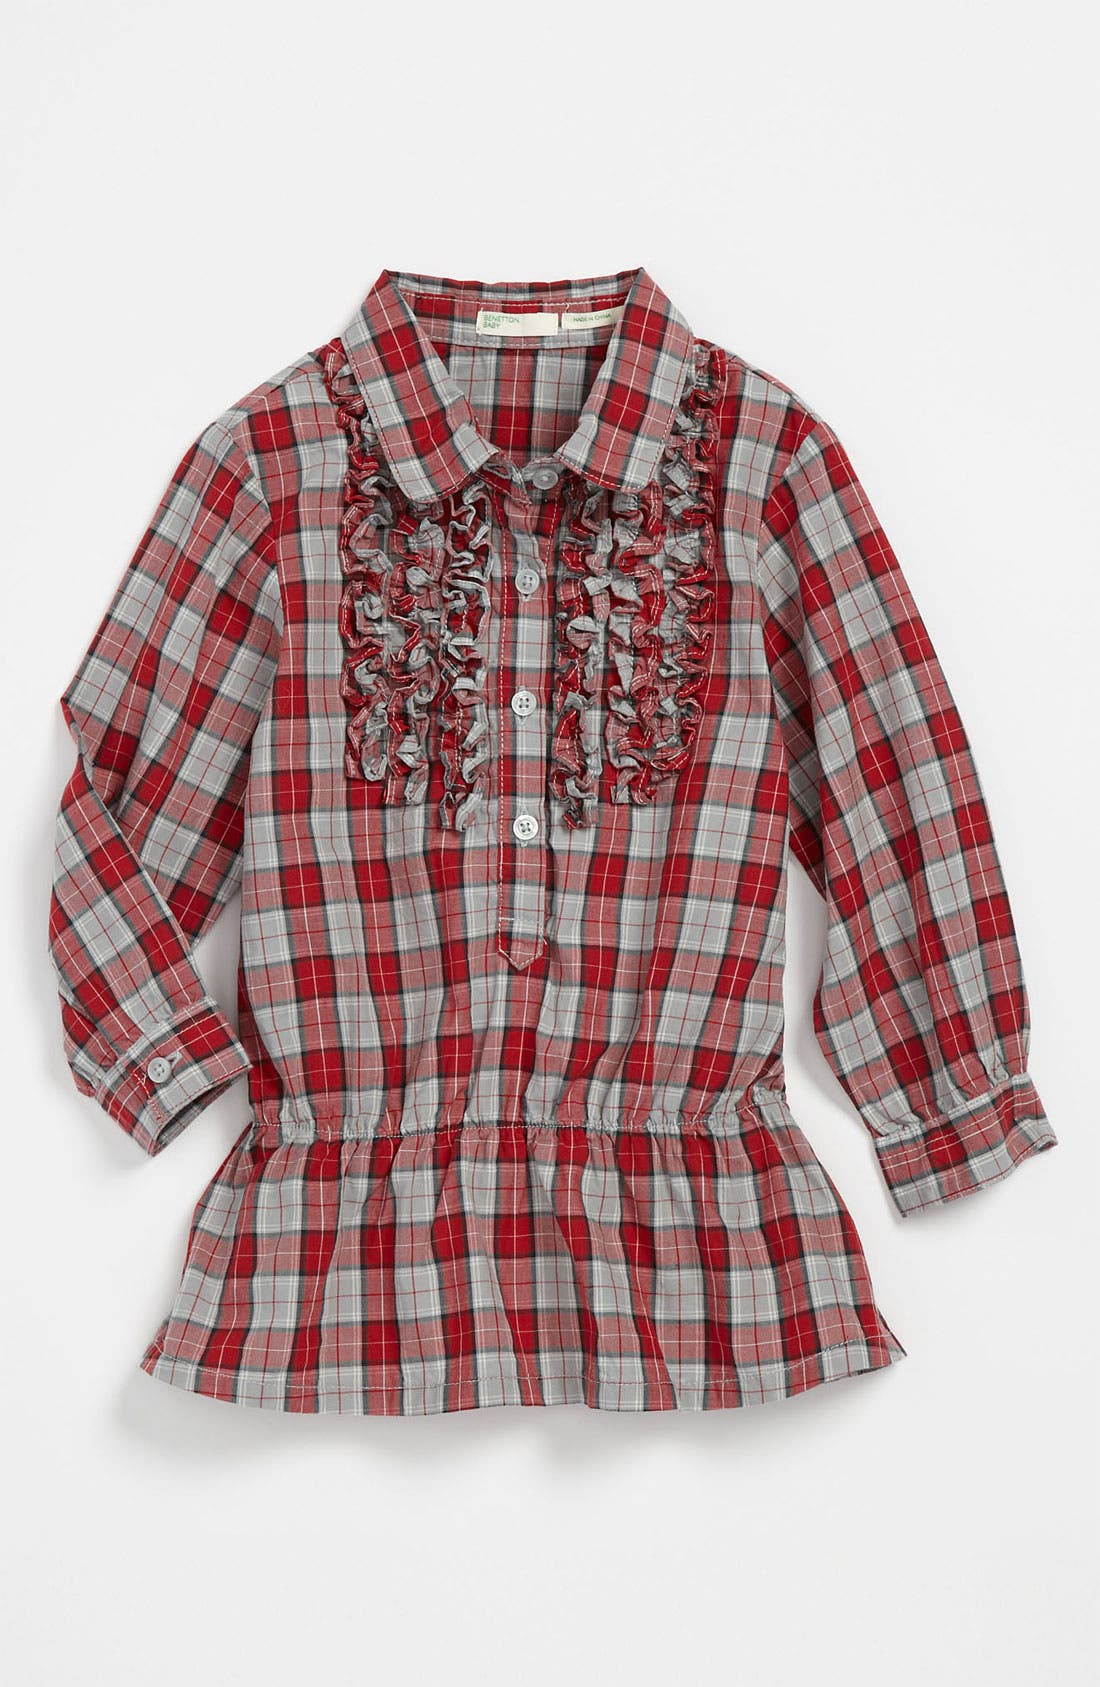 Alternate Image 1 Selected - United Colors of Benetton Kids Plaid Tunic (Infant)